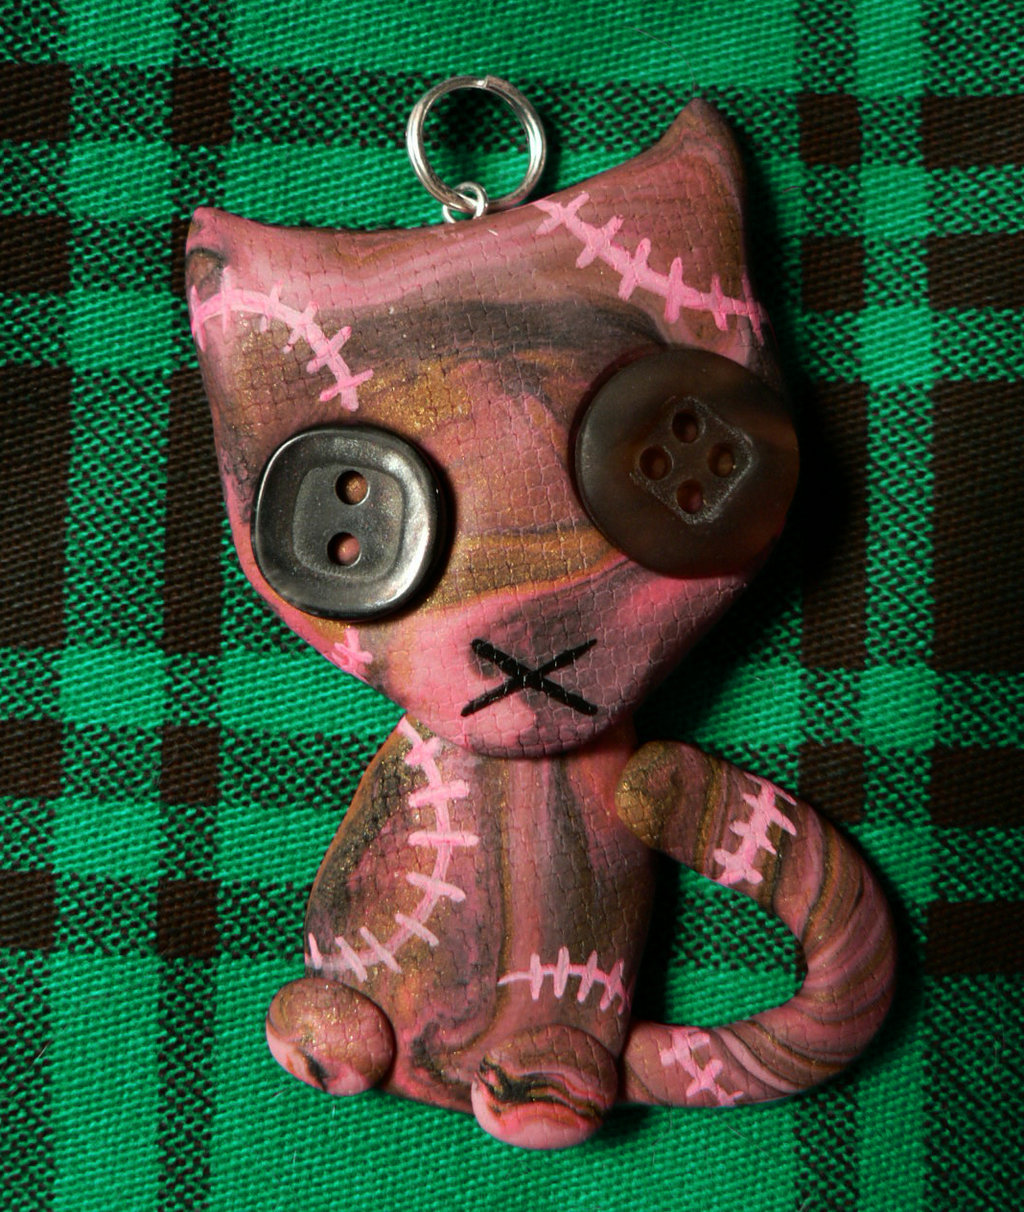 pink_stitchpunk_kitty_pendant_by_blackmagdalena-d62sxg6